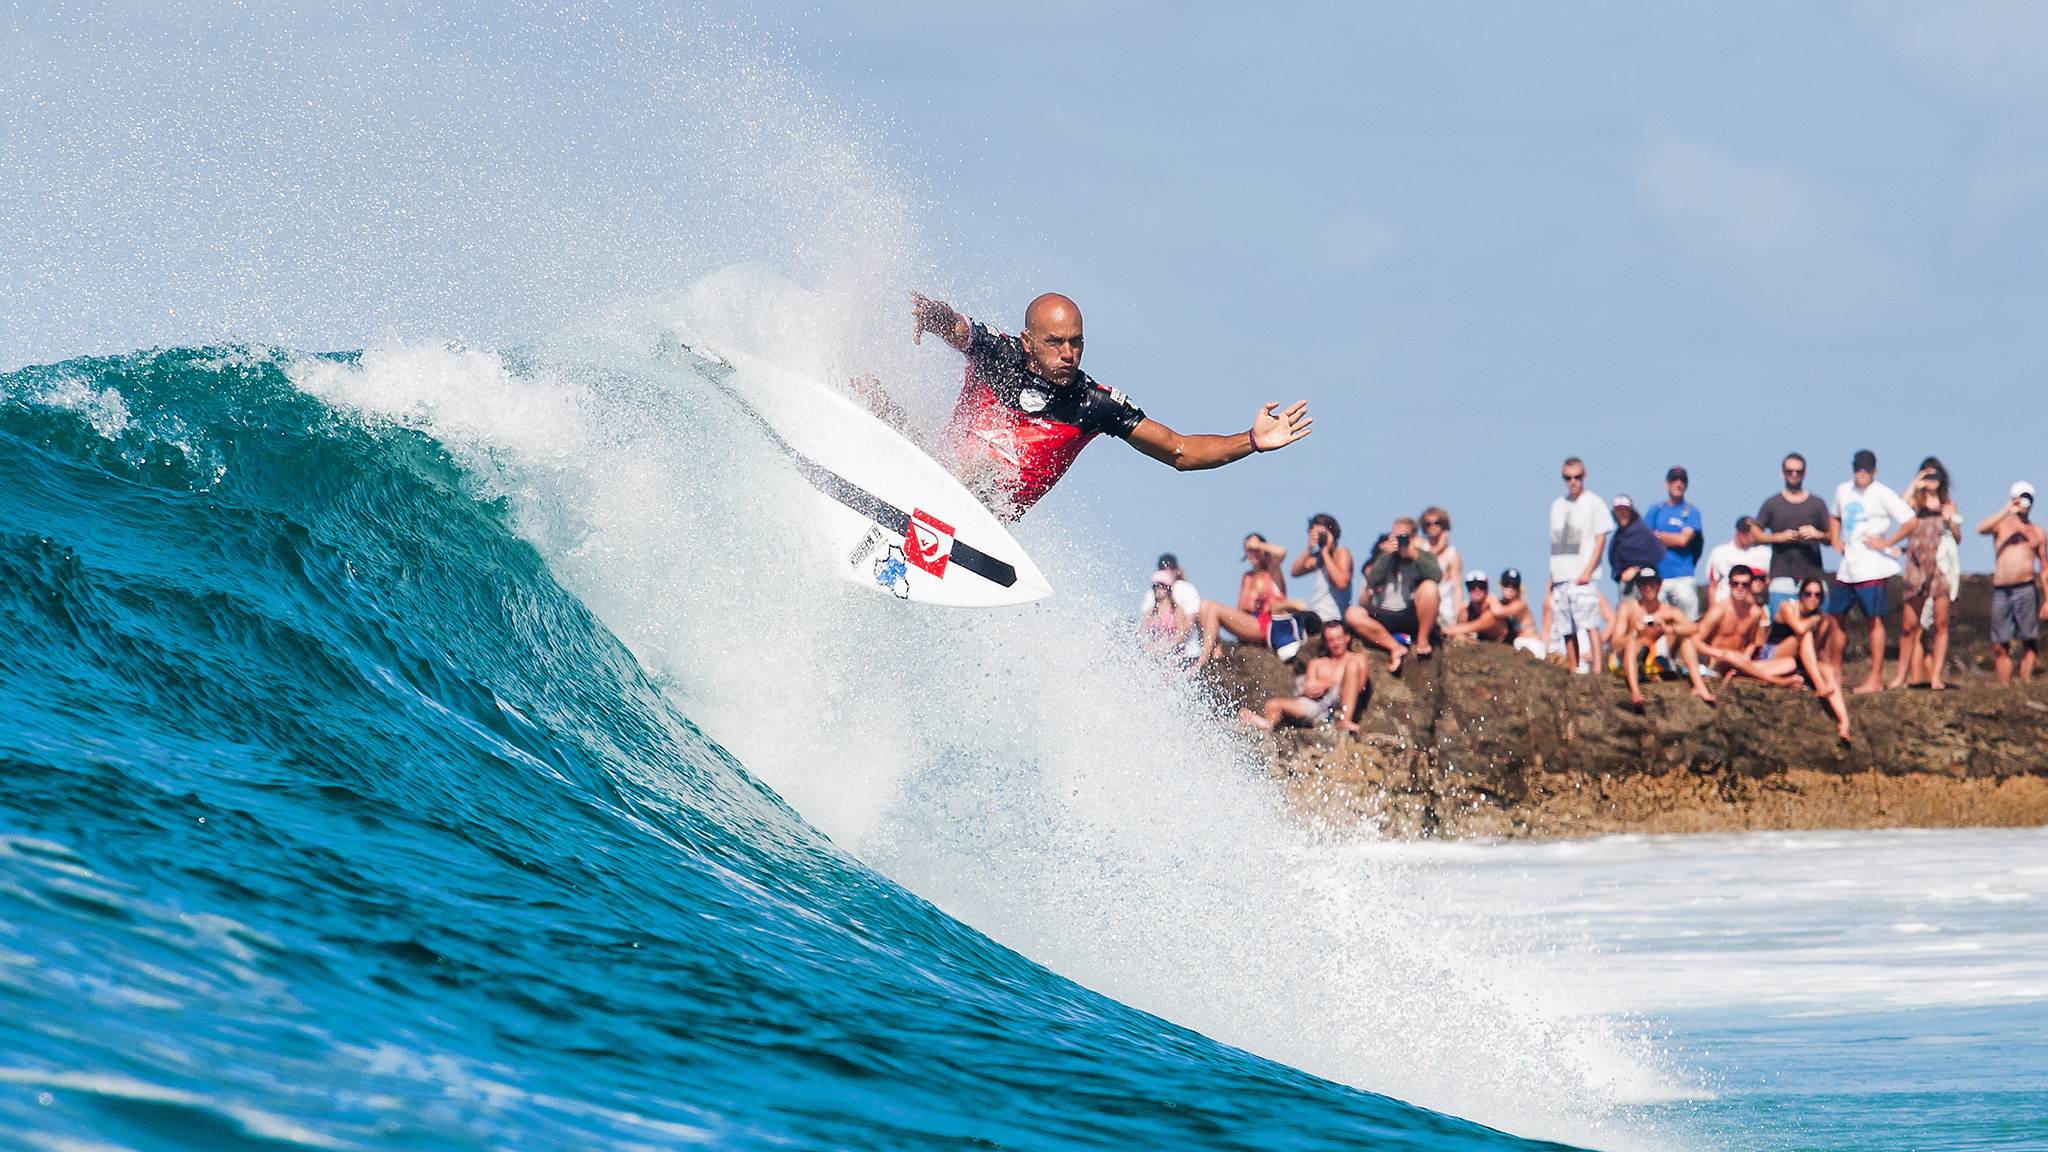 Kelly Slater Ends Sponsorship With Quiksilver